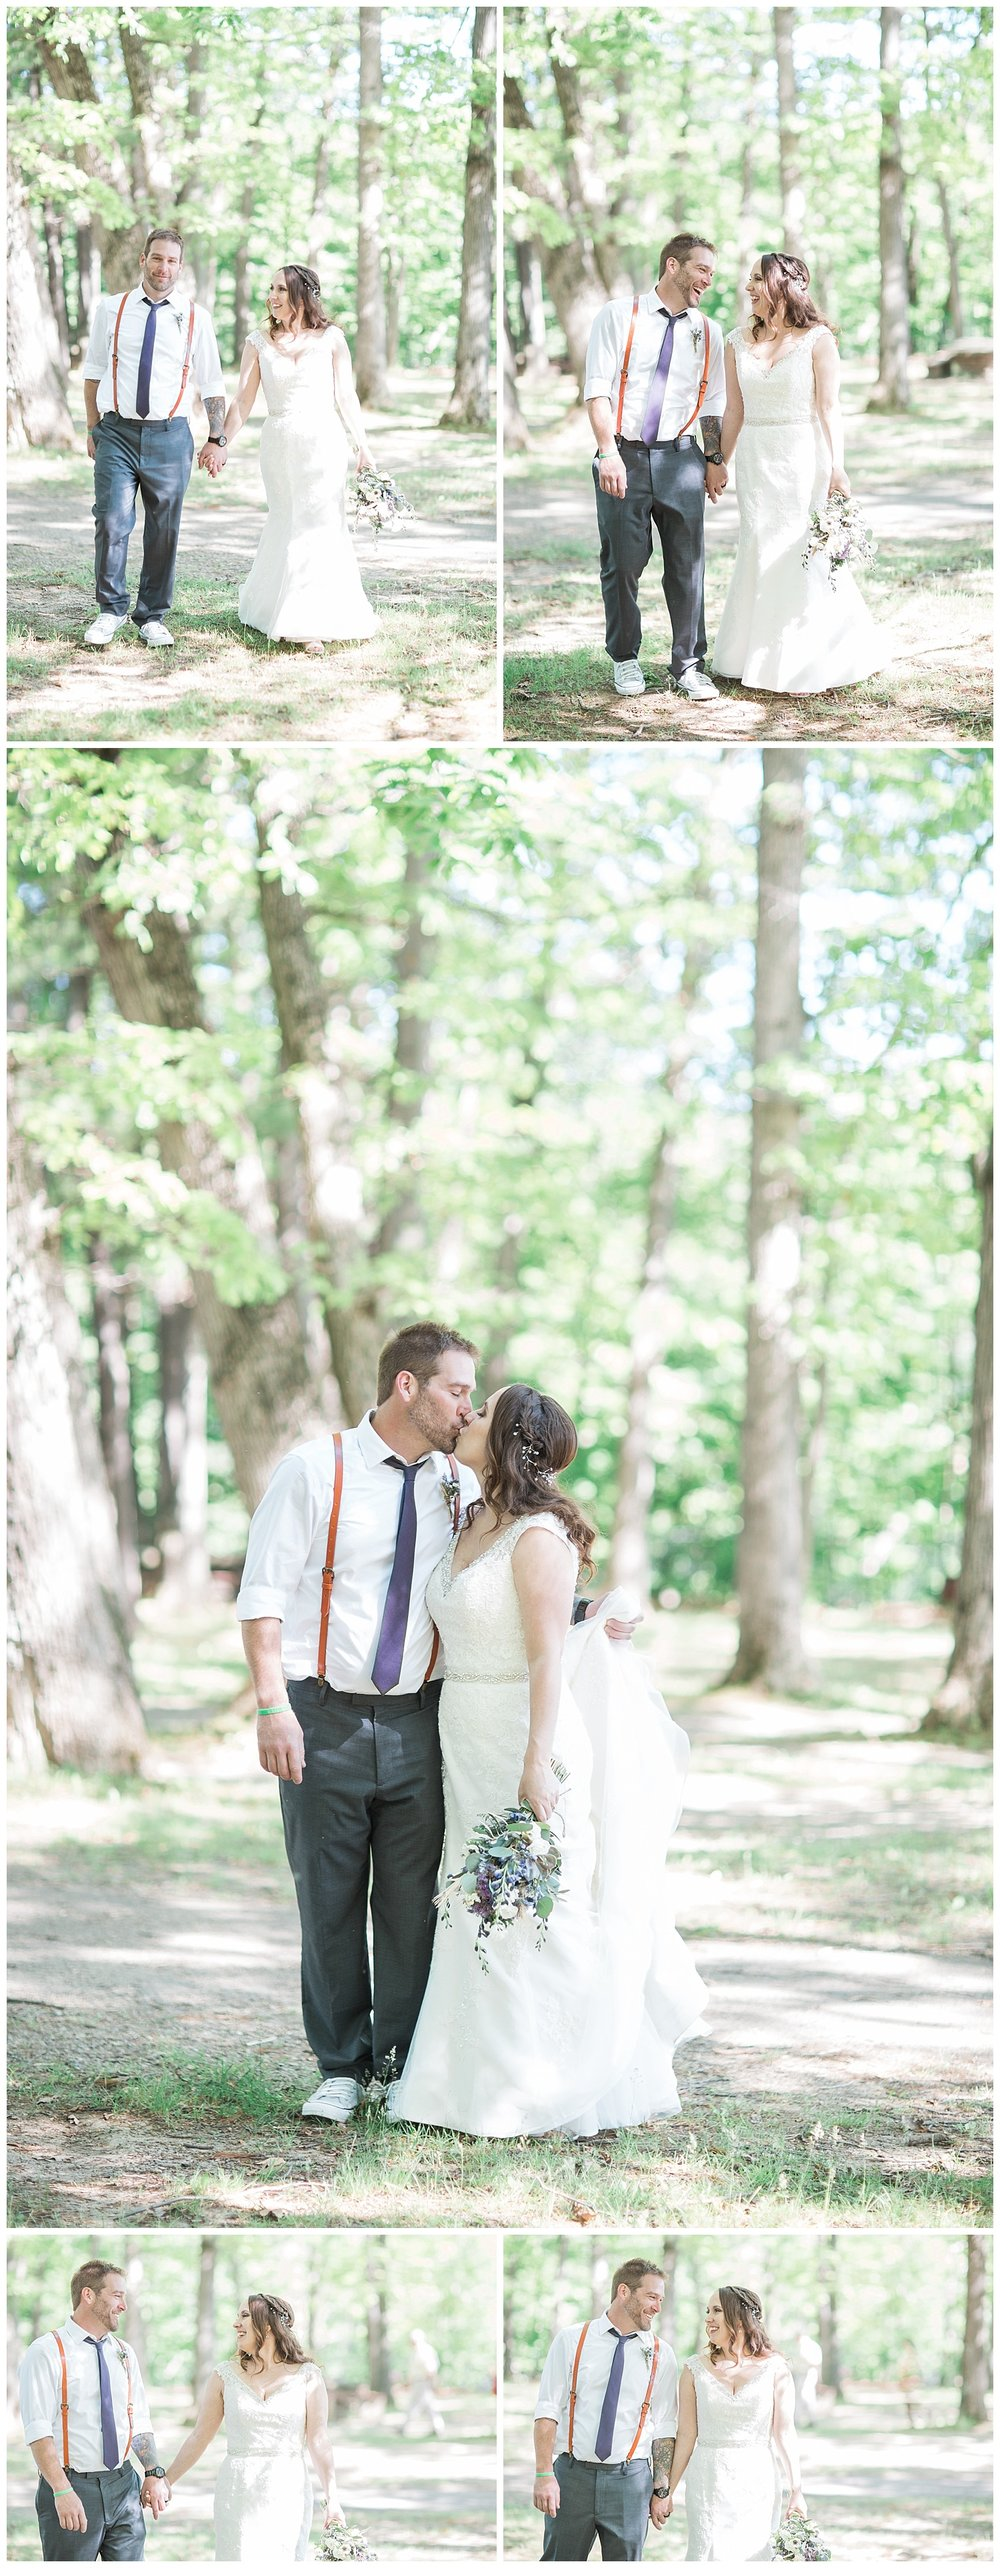 The Martin wedding - Lass & Beau-1191_Buffalo wedding photography.jpg